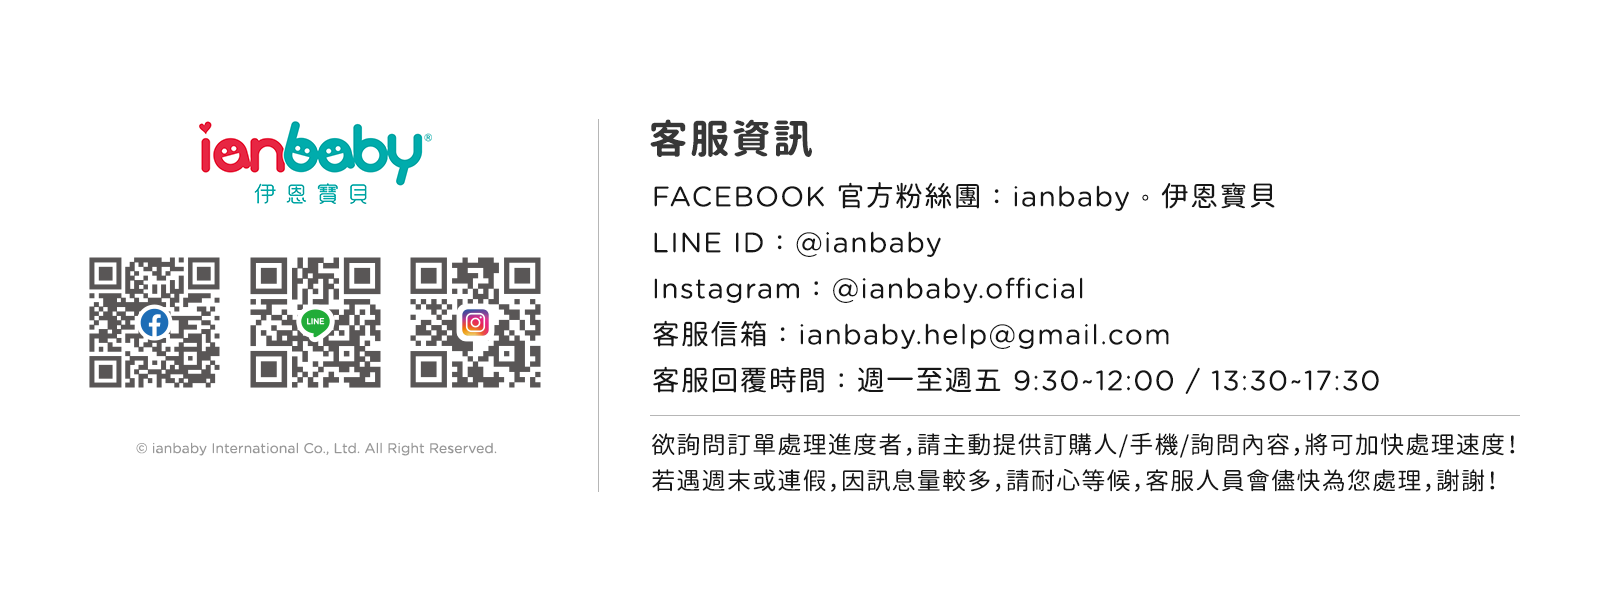 ianbaby-客服資訊.png